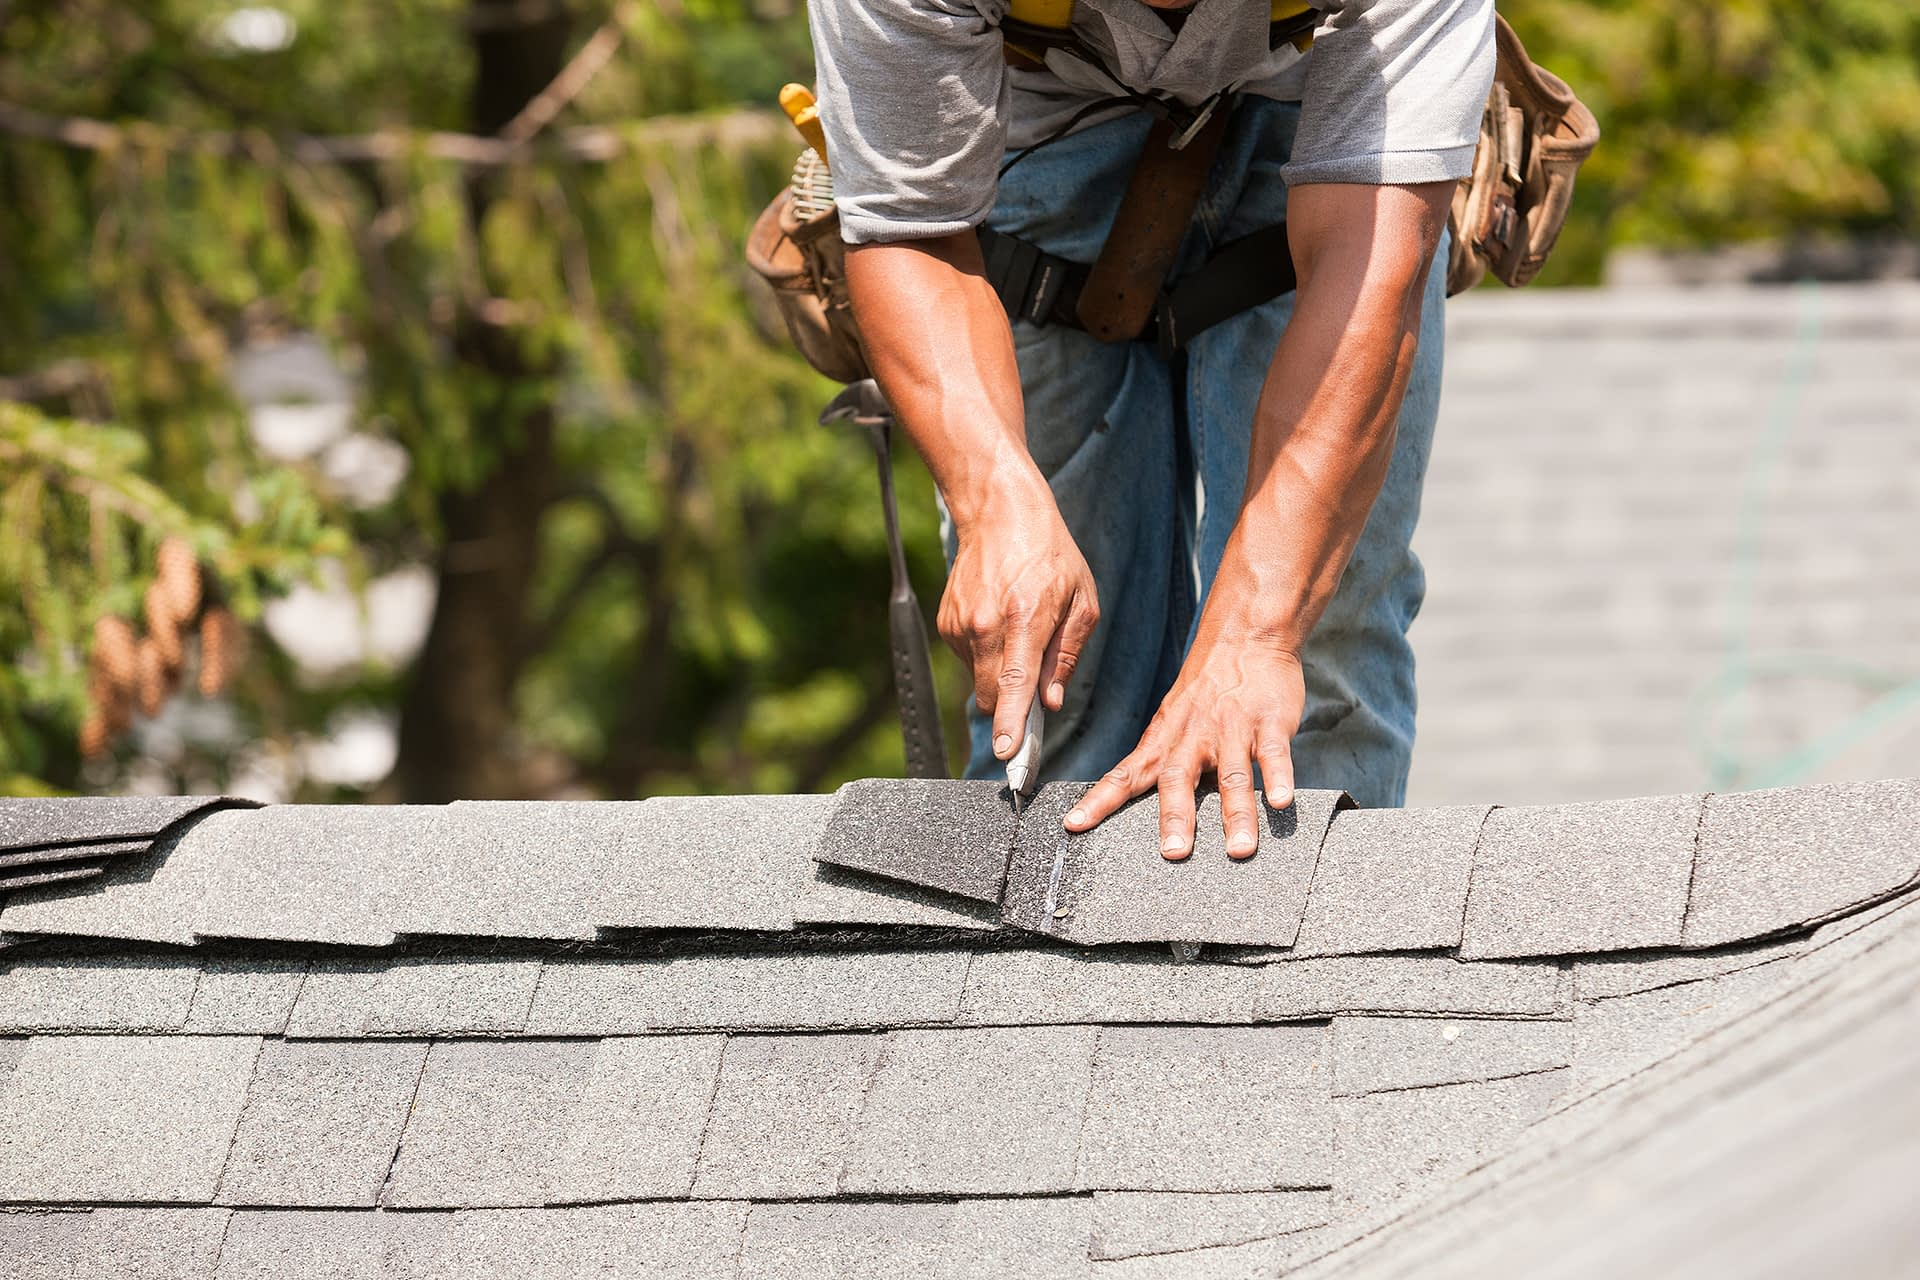 5 Useful Tips to Get the Best Out of Your Roofing Insurance-thatviralfeedcdn